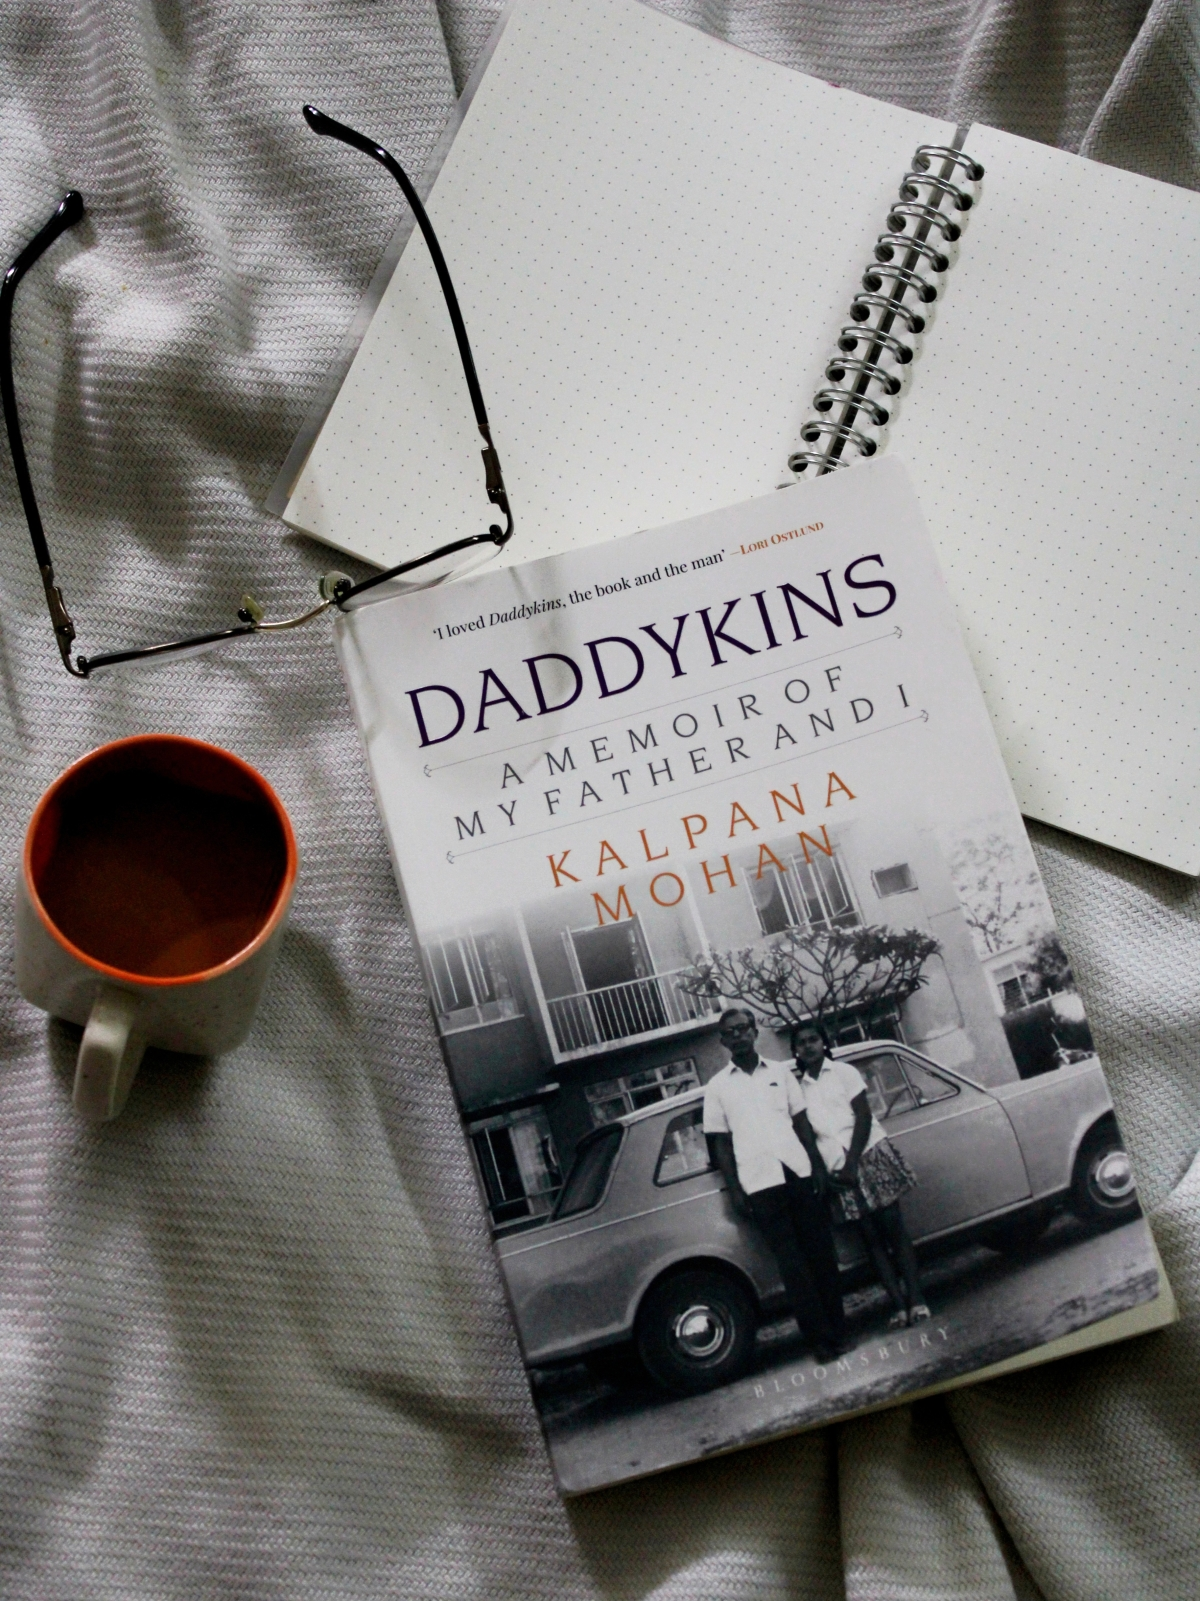 Daddykins by Kalpana Mohan: A bitter-sweet memoir that will make you laugh and cry.